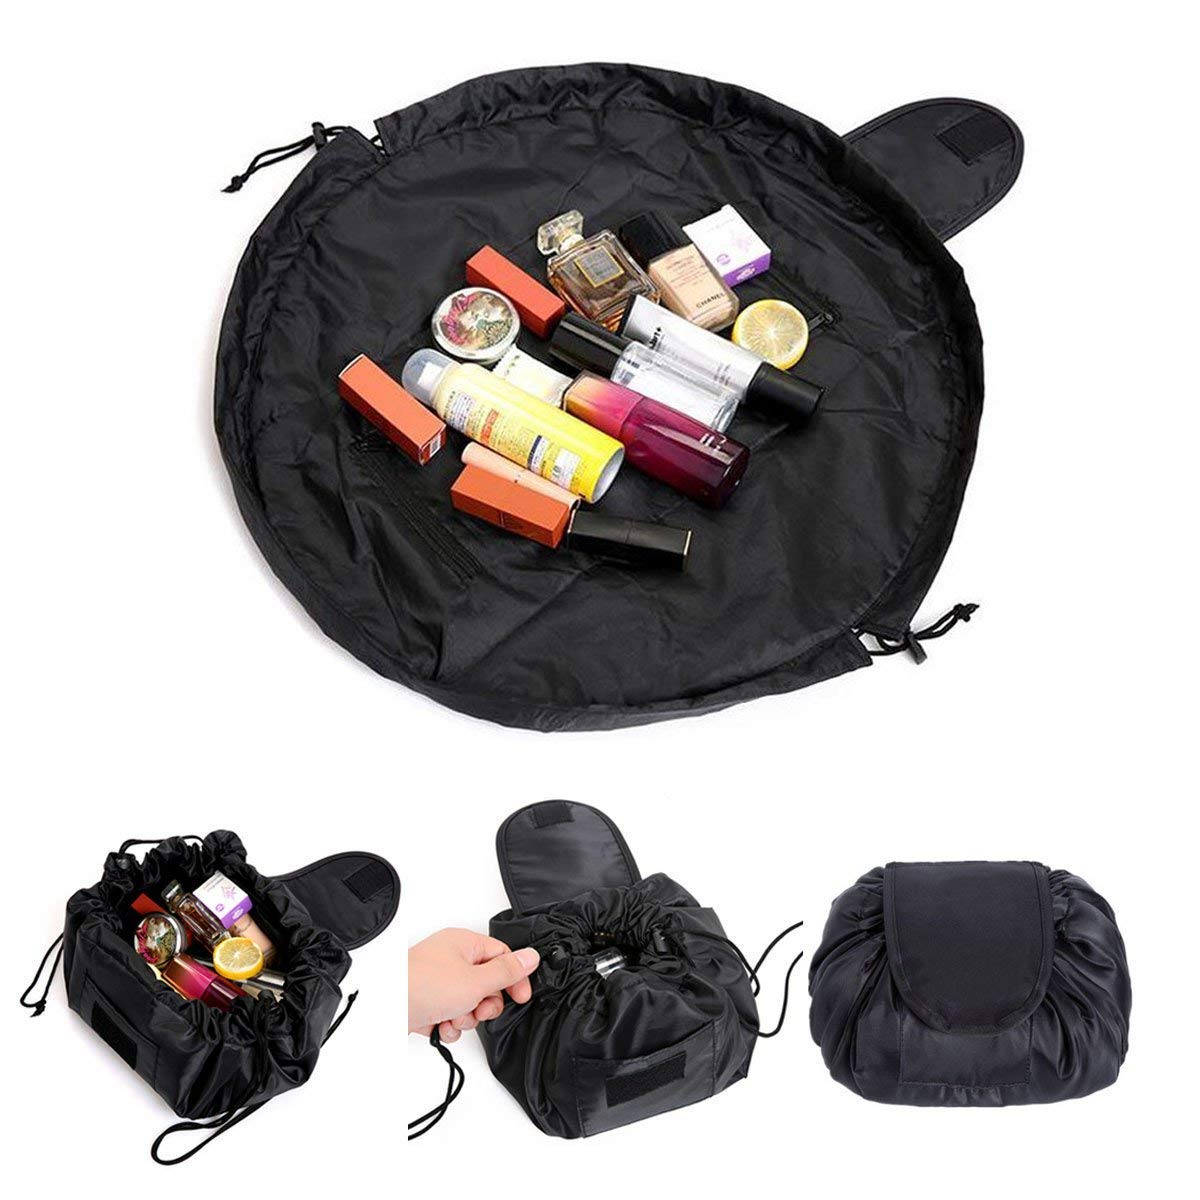 Lazy Cosmetic Bag, Fashion Cosmetic Bag Borsa Cosmetica, Large Capacity Portable Drawstring Storage Artifact Magic Travel Pouch Simple Makeup Toiletry Bag ANN-BEAU-RS01D